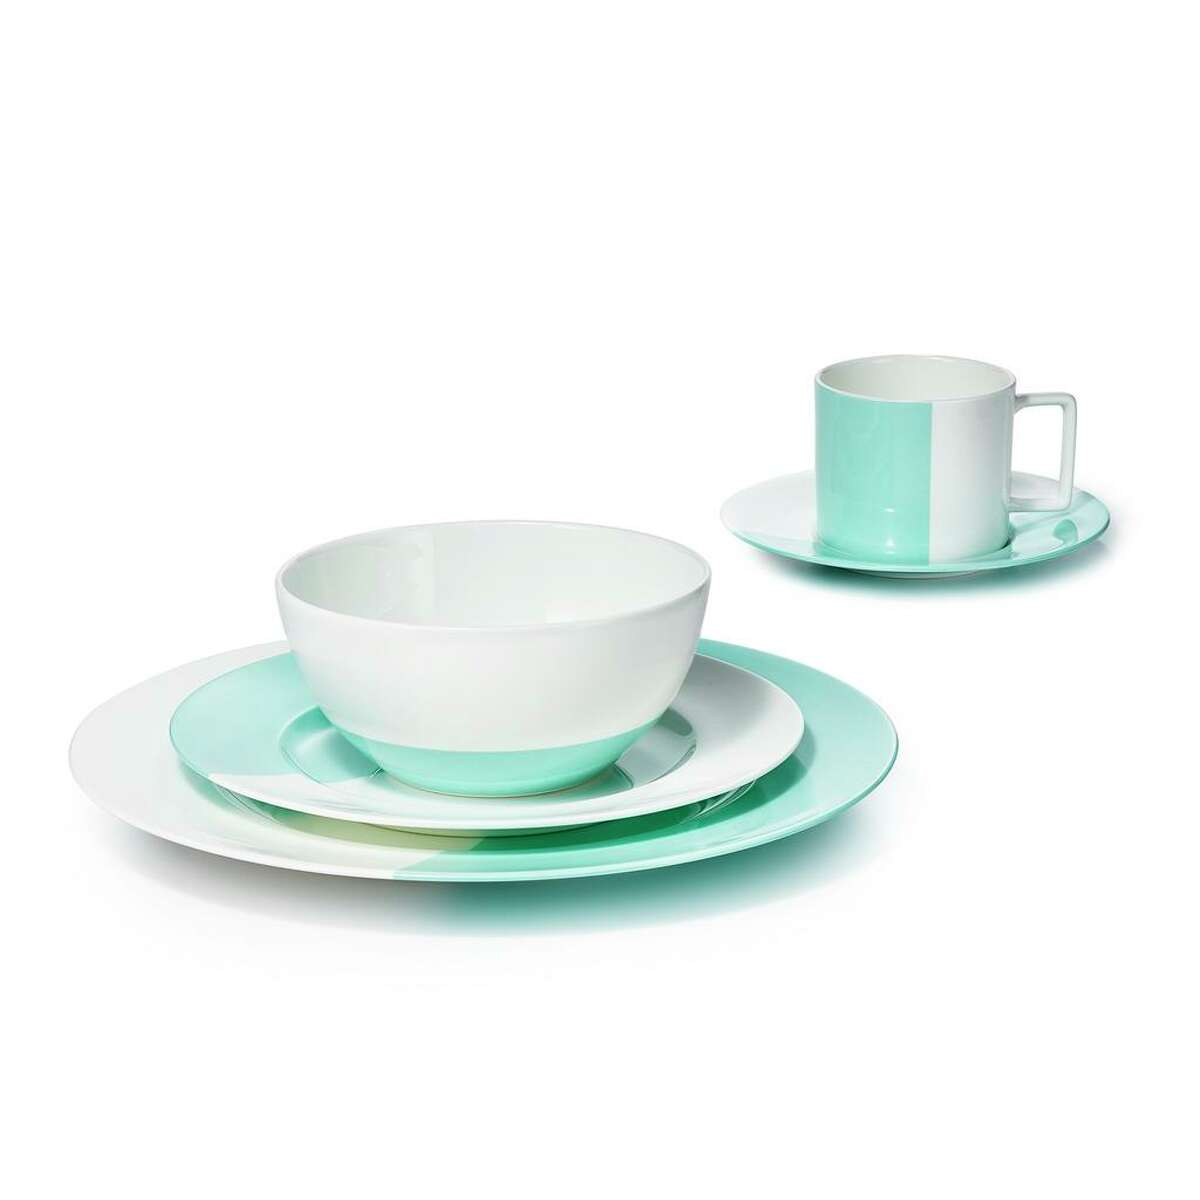 Tiffany brings a fresh and modern perspective to its Color Block Collection, blending soft ivory with its signature robin's egg blue in dishes, napkins and placemats. $320 per place setting, $125 set of 4 napkins, $175 set of 4 placemats; Tiffany & Co.